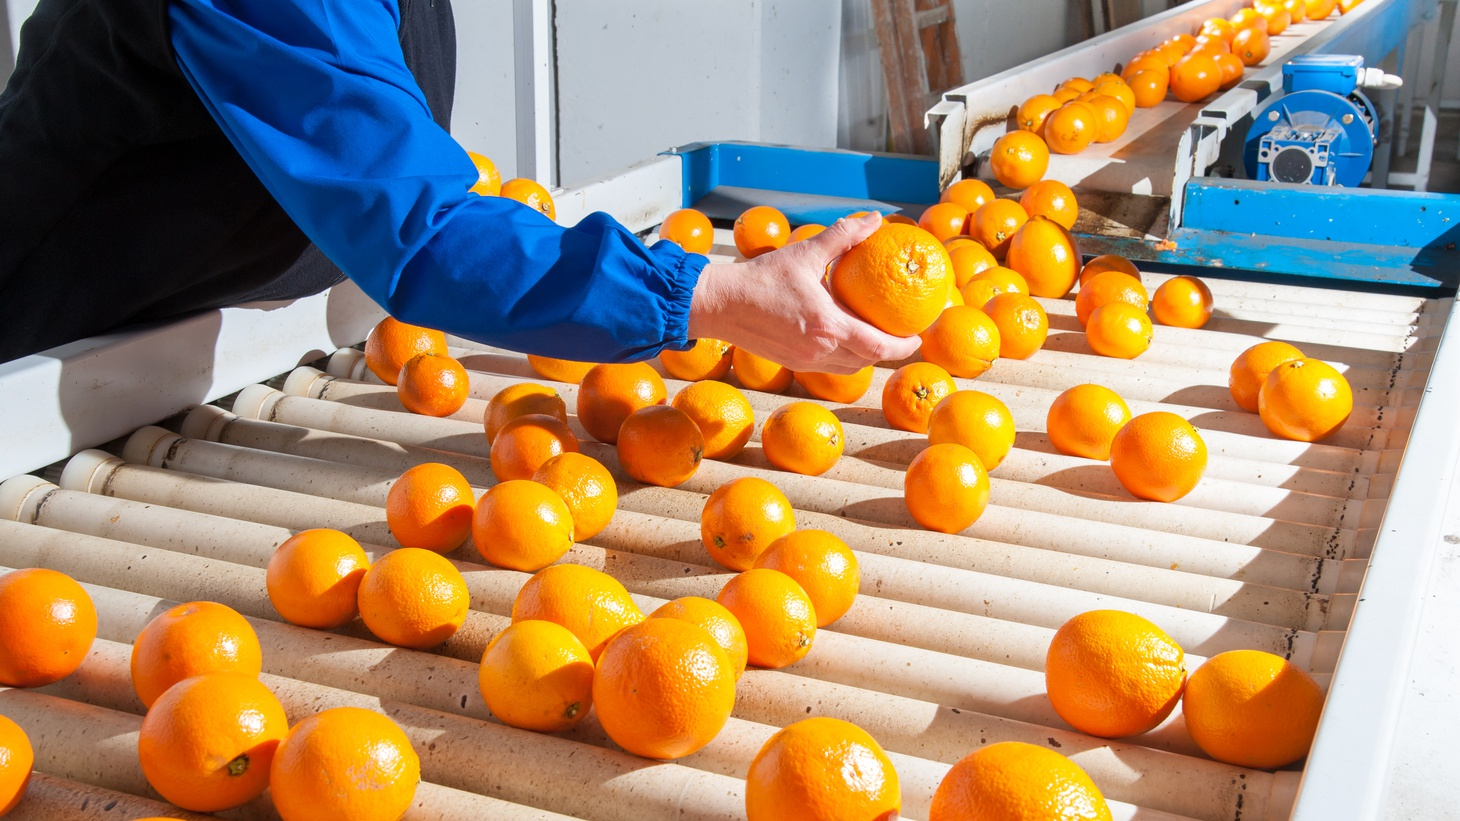 Manual checking of tarocco oranges in the carriage of a modern production line.